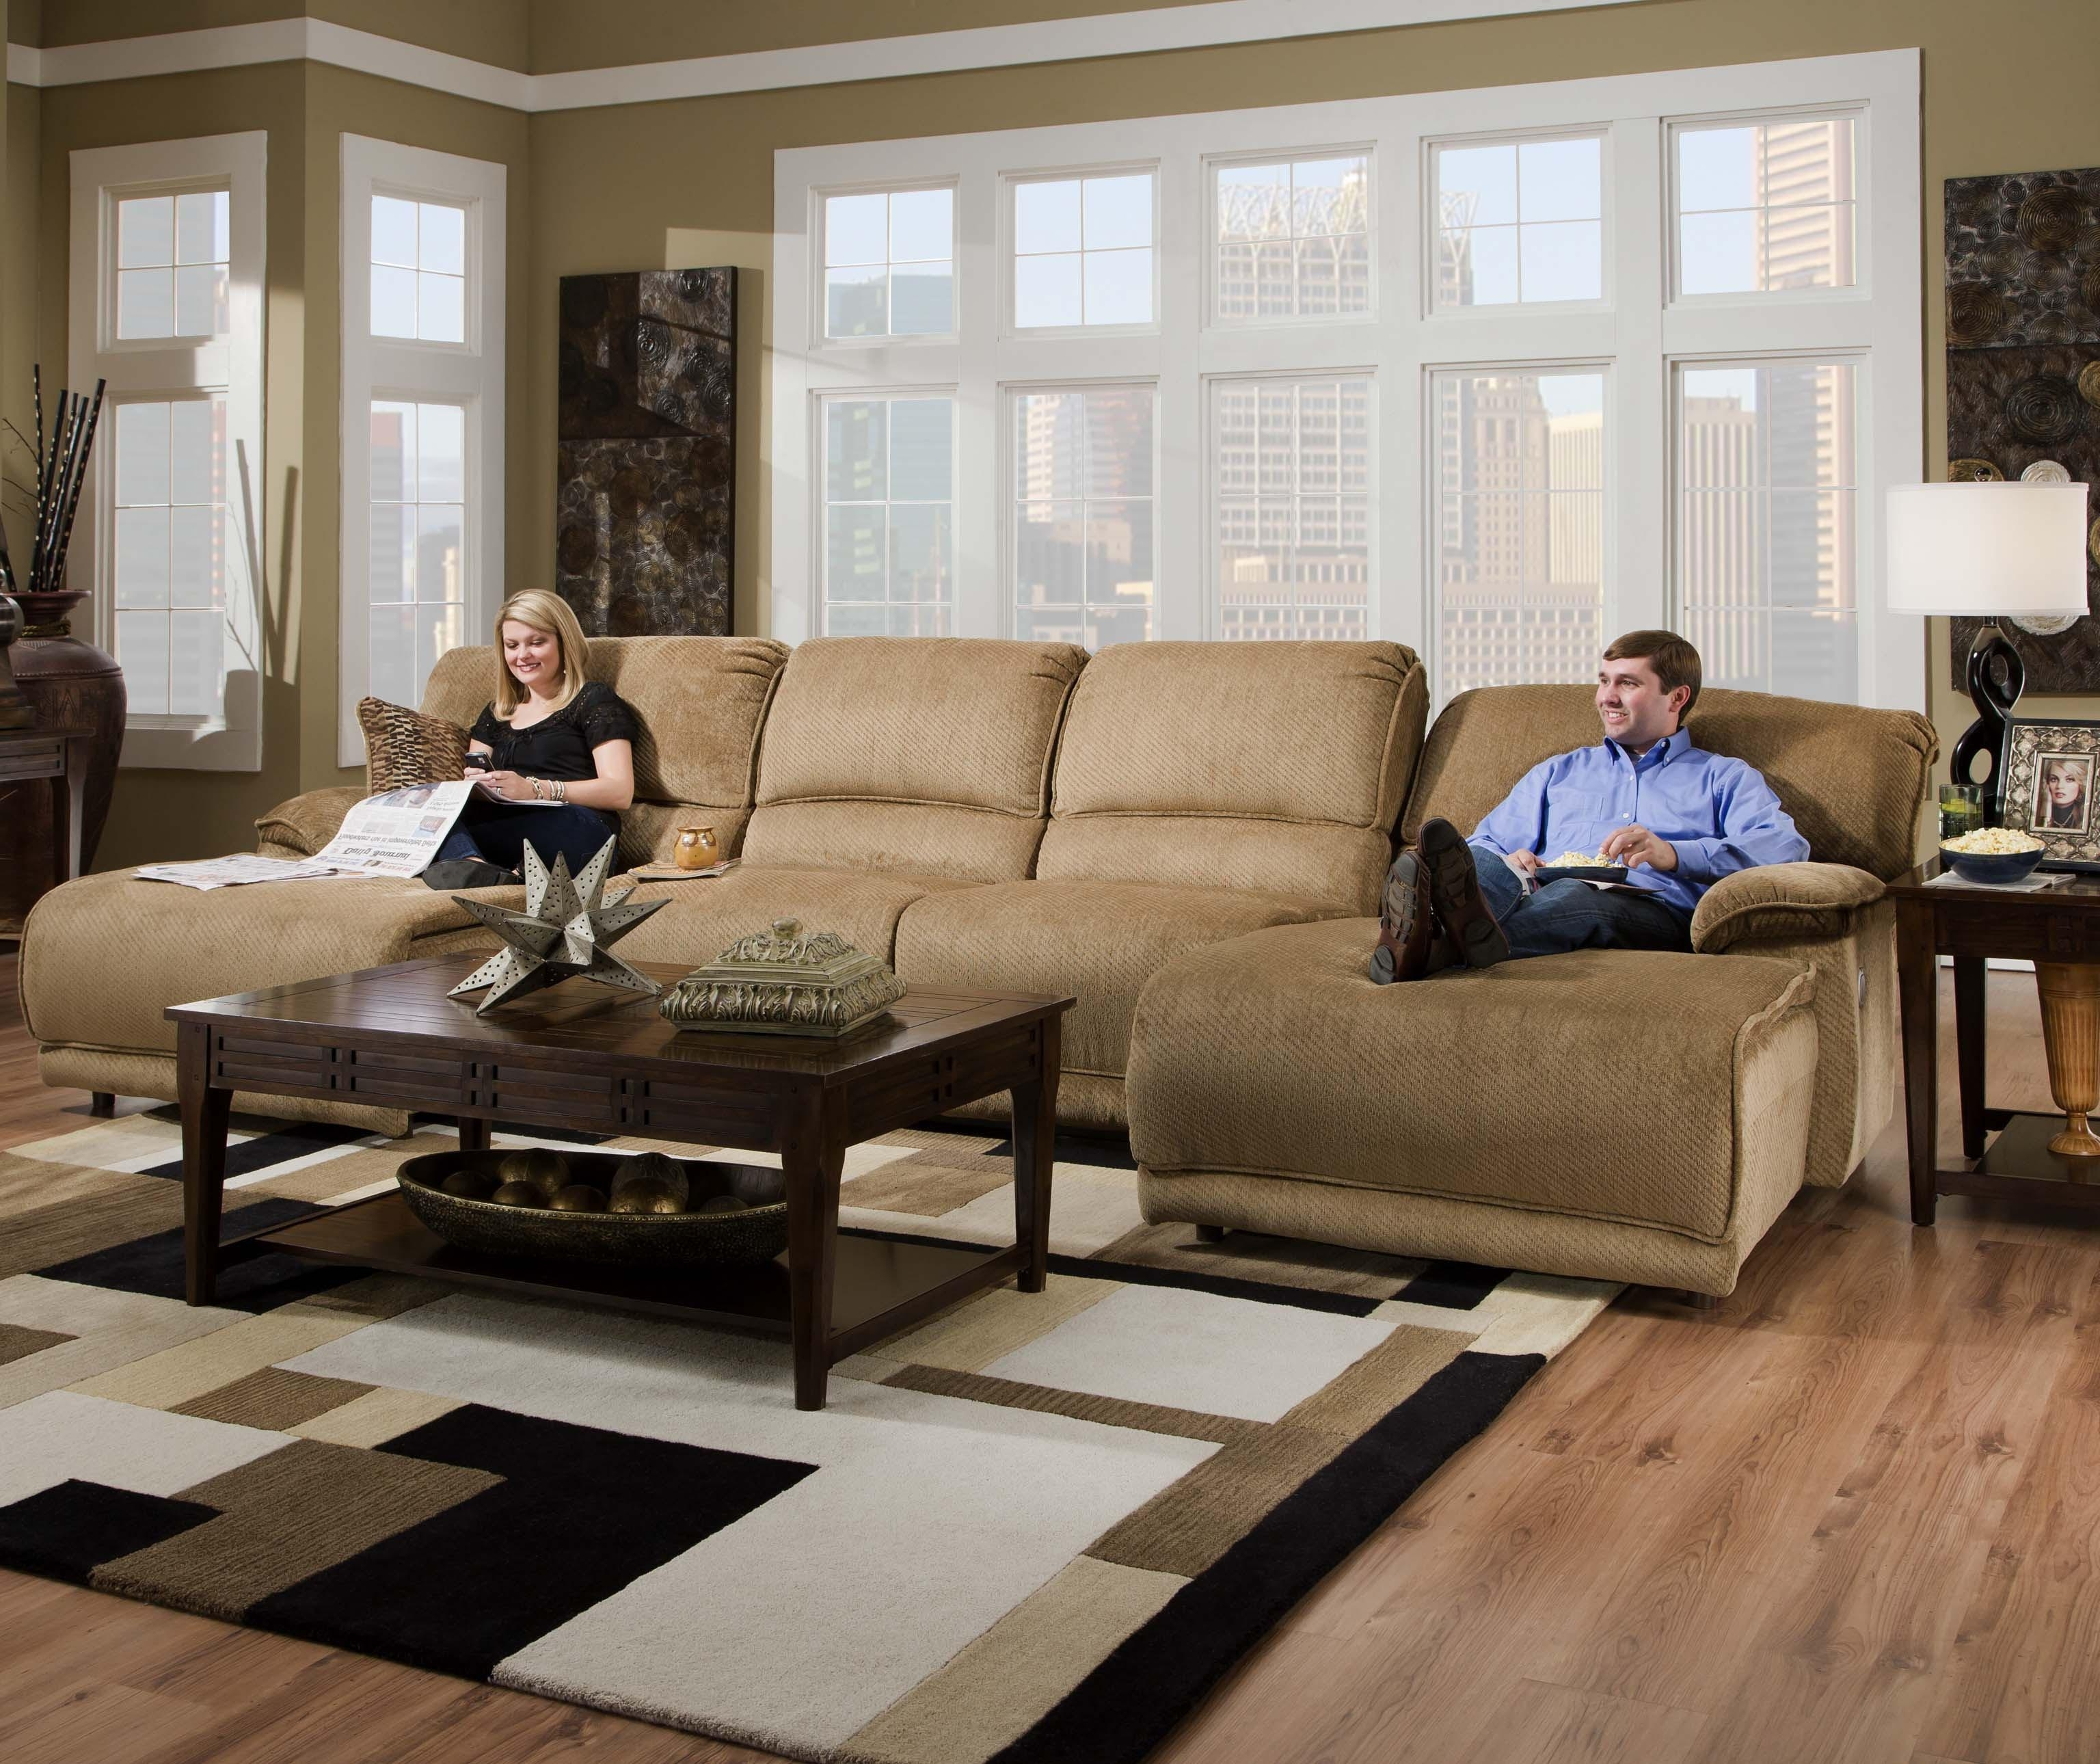 Most Recent Sectionals With Chaise And Recliner In Reclining Sectional Sofas For Small Spaces Cheap Living Room Sets (View 5 of 15)